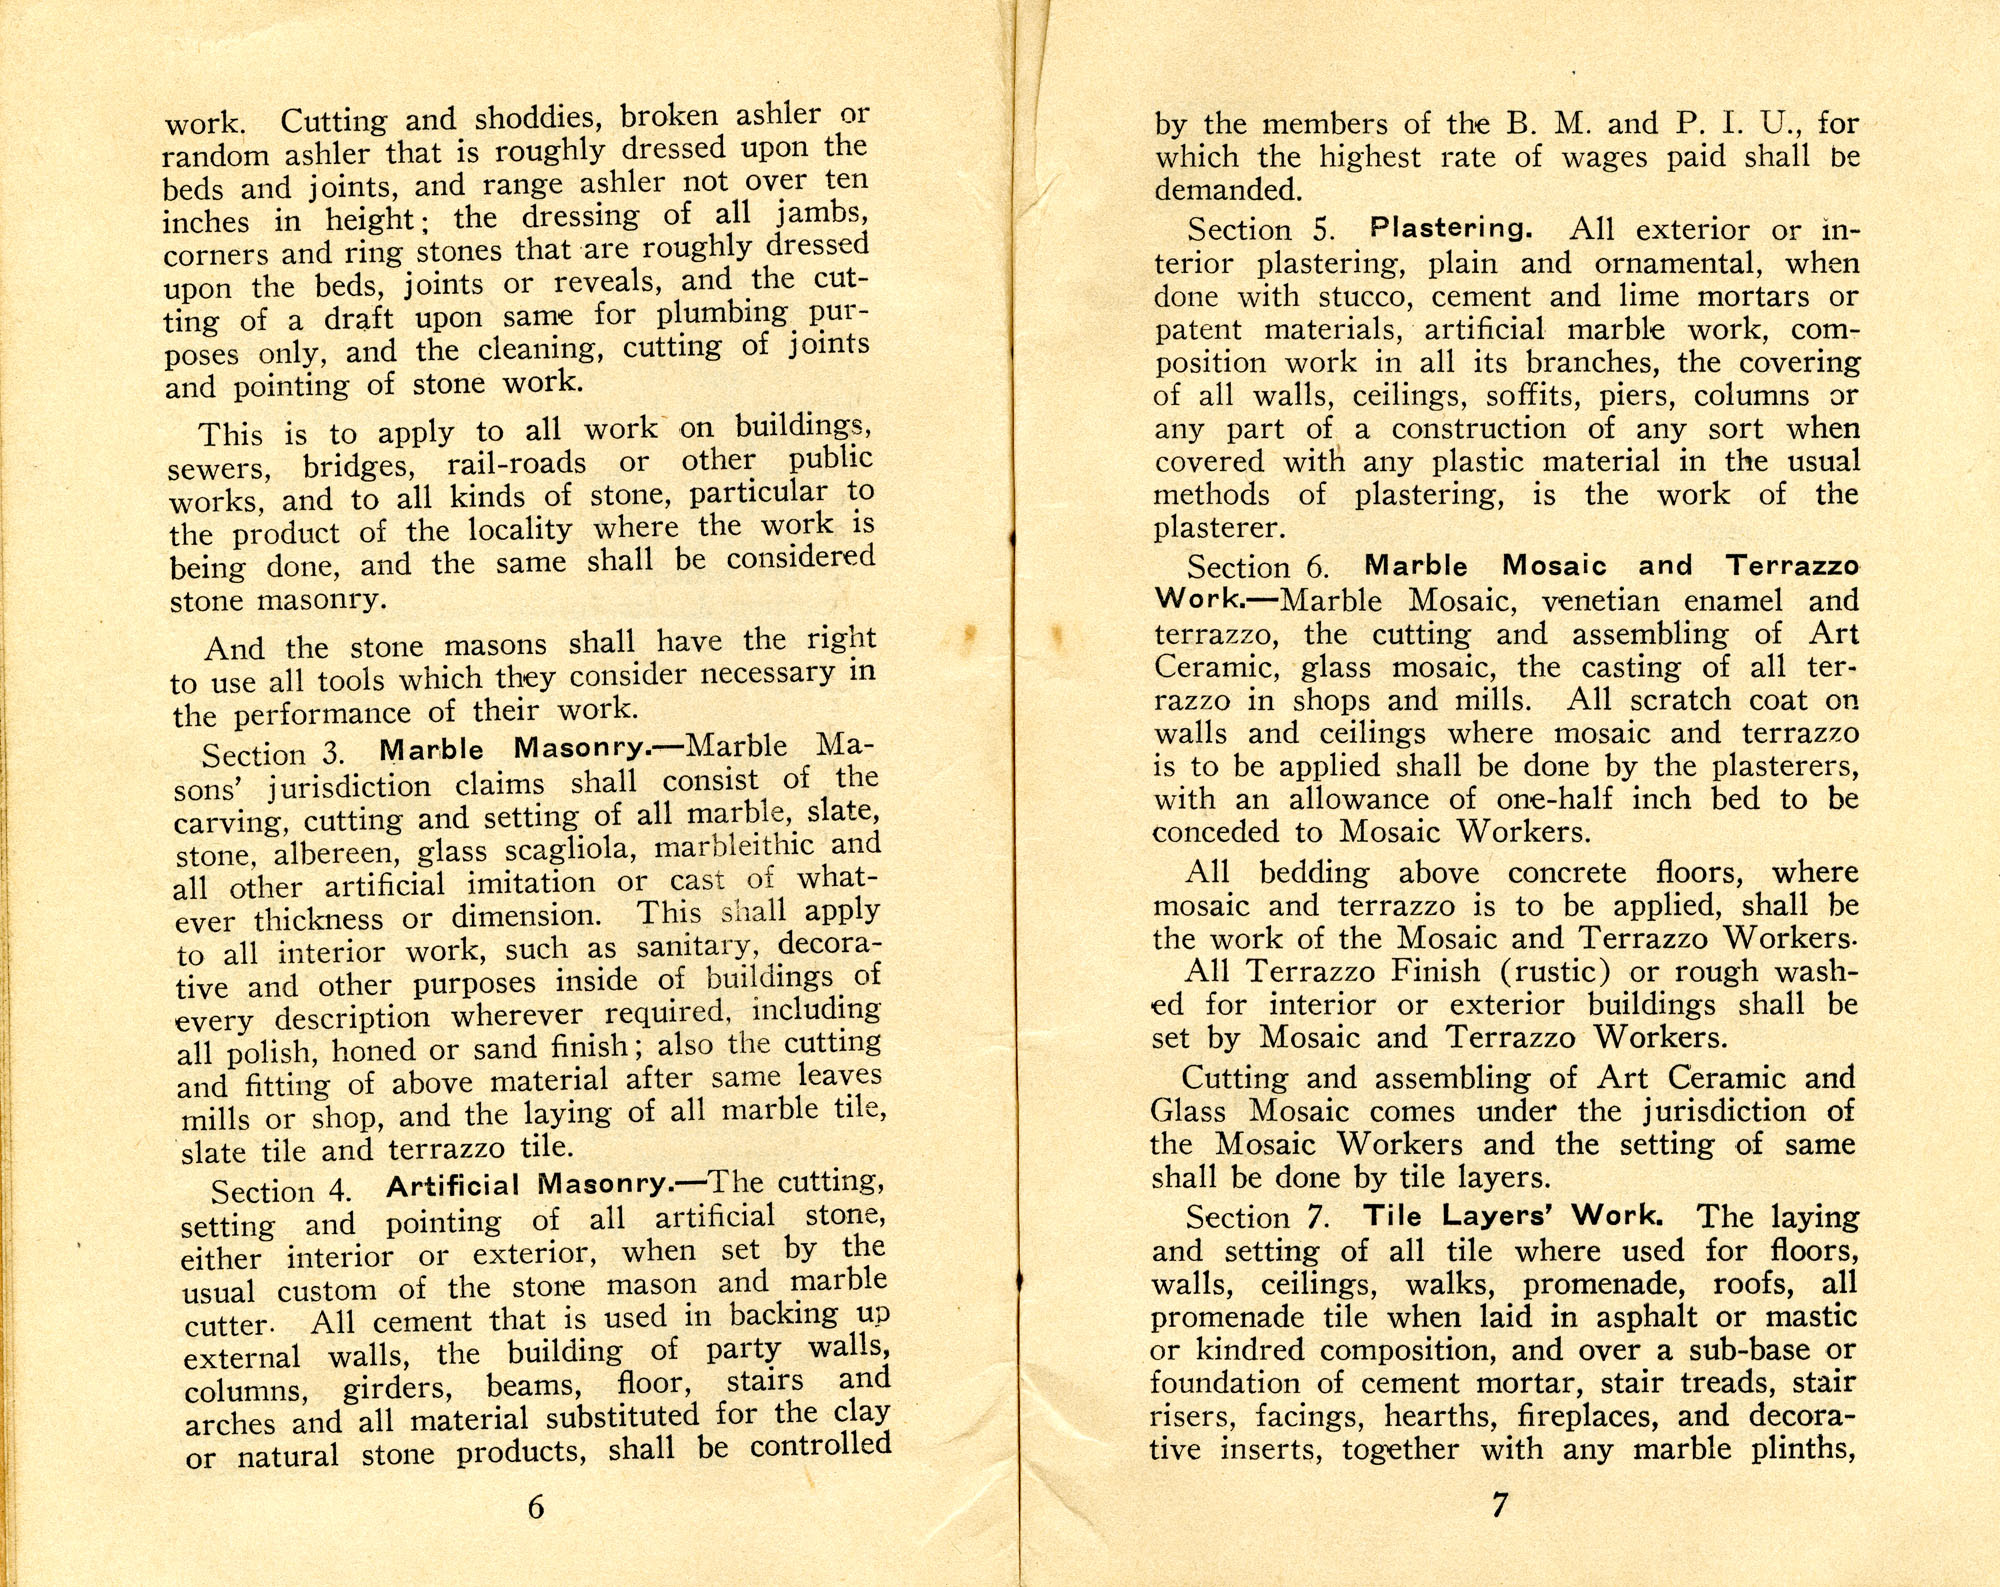 Constitution, by-laws, working code and rules of order, Page 4